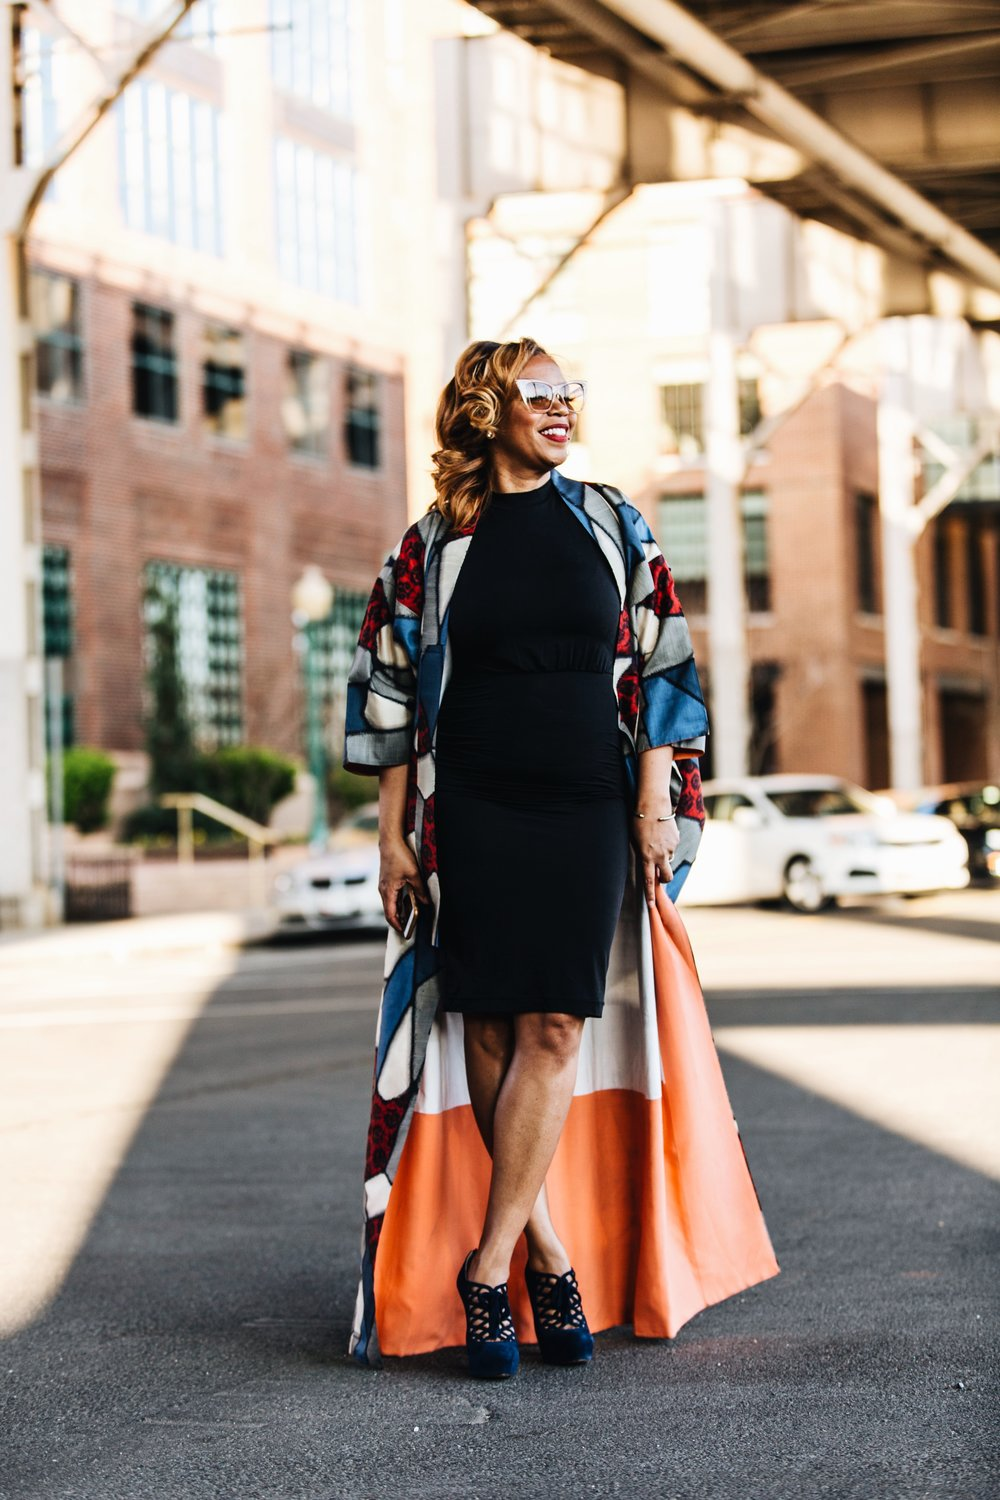 A image of personal stylist looksbybloom wearing sunglasses, black dress, multicolored patterned kimono captured by photographer The Creative Gentleman for Fashion Bomb Daily.This image was captured during the Conversations with Claire brunch event in Washington, D.C.